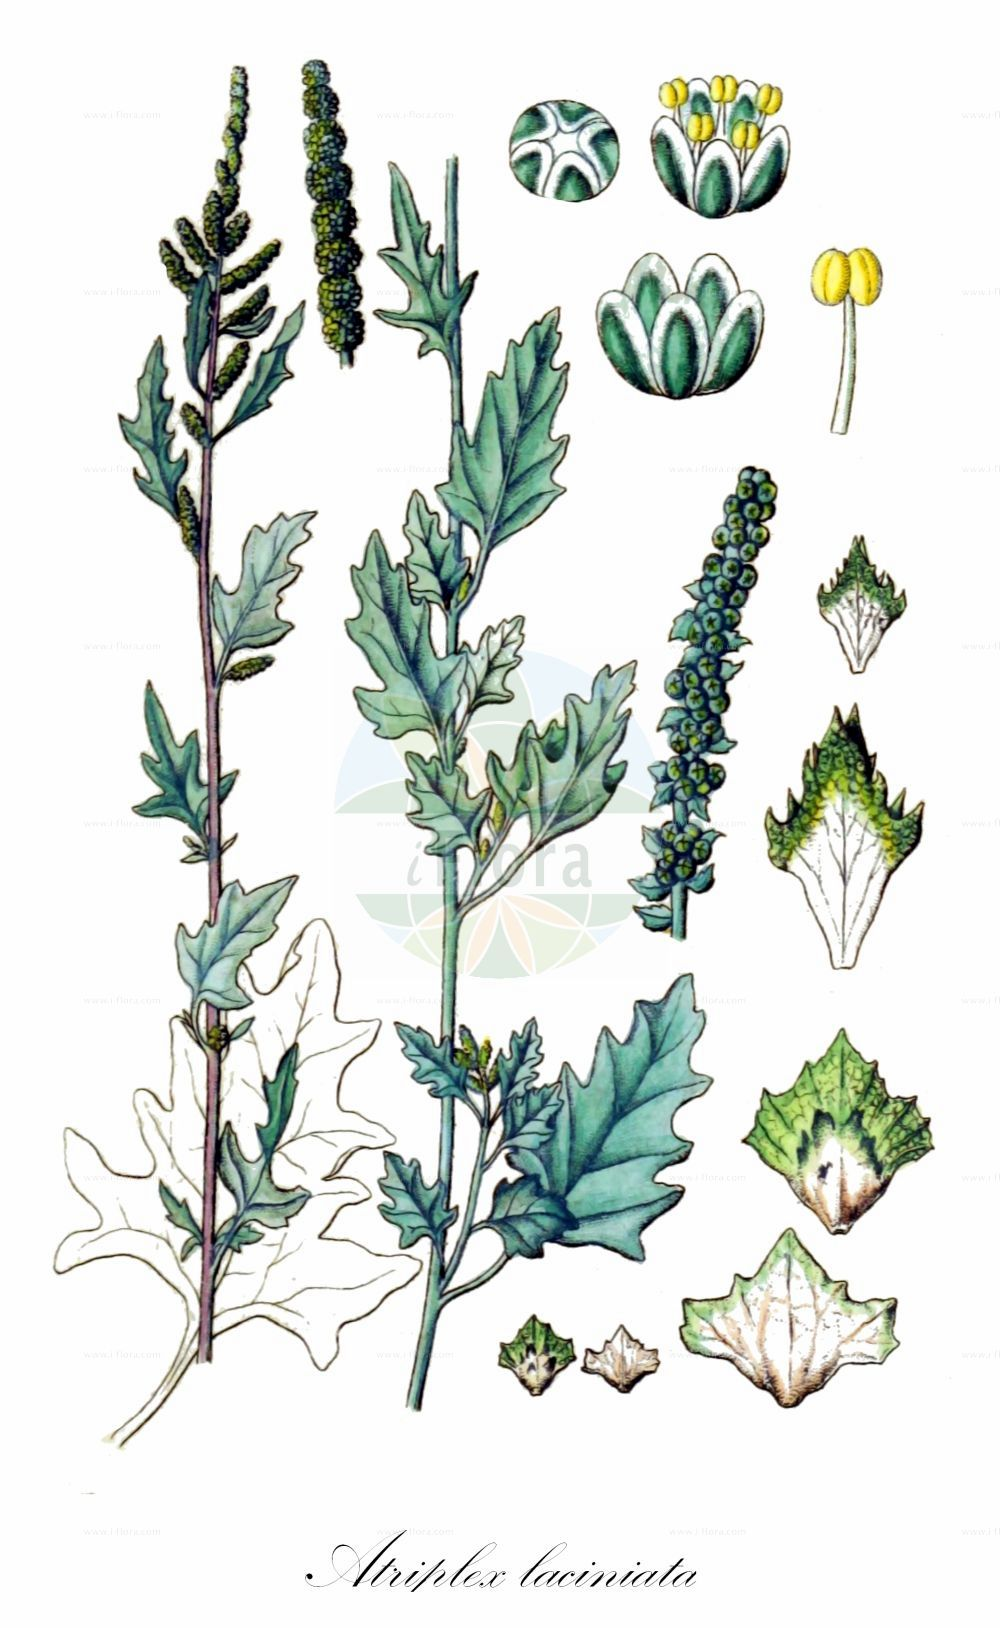 Historische Abbildung von Atriplex laciniata (Gelappte Melde - Frosted Orache). Das Bild zeigt Blatt, Bluete, Frucht und Same. ---- Historical Drawing of Atriplex laciniata (Gelappte Melde - Frosted Orache).The image is showing leaf, flower, fruit and seed.(Atriplex laciniata,Gelappte Melde,Frosted Orache,Atriplex arenaria,Atriplex maritima,Atriplex sabulosa,Atriplex,Melde,Saltbush,Amaranthaceae,Fuchsschwanzgewaechse,Pigweed family,Blatt,Bluete,Frucht,Same,leaf,flower,fruit,seed,Sturm (1796f))